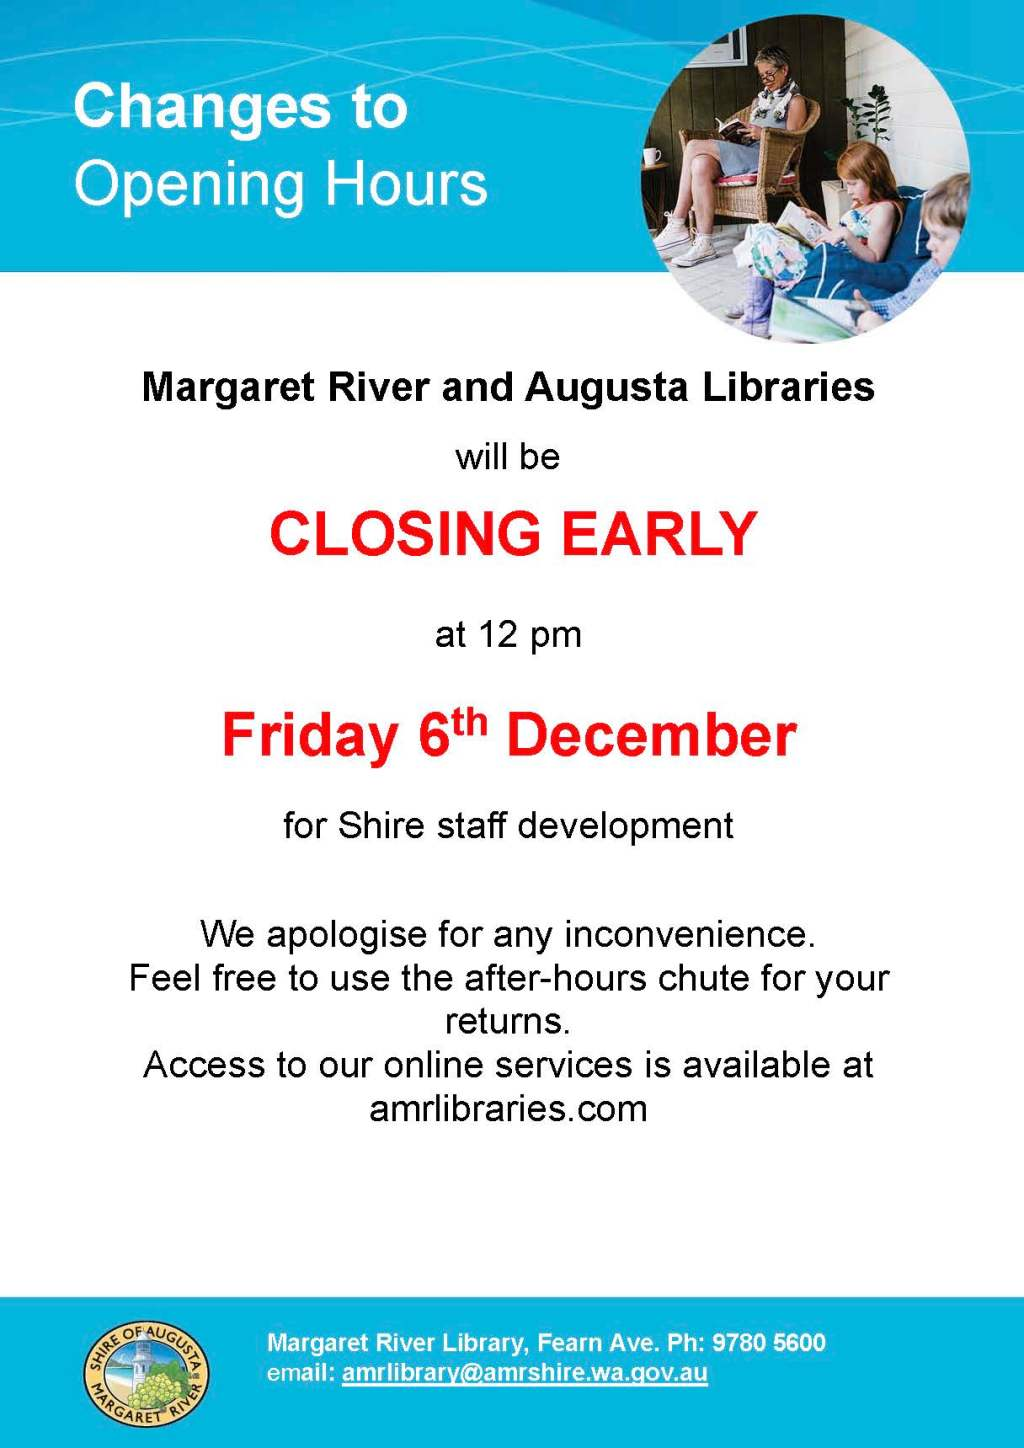 Libraries close at noon on Friday 6th December